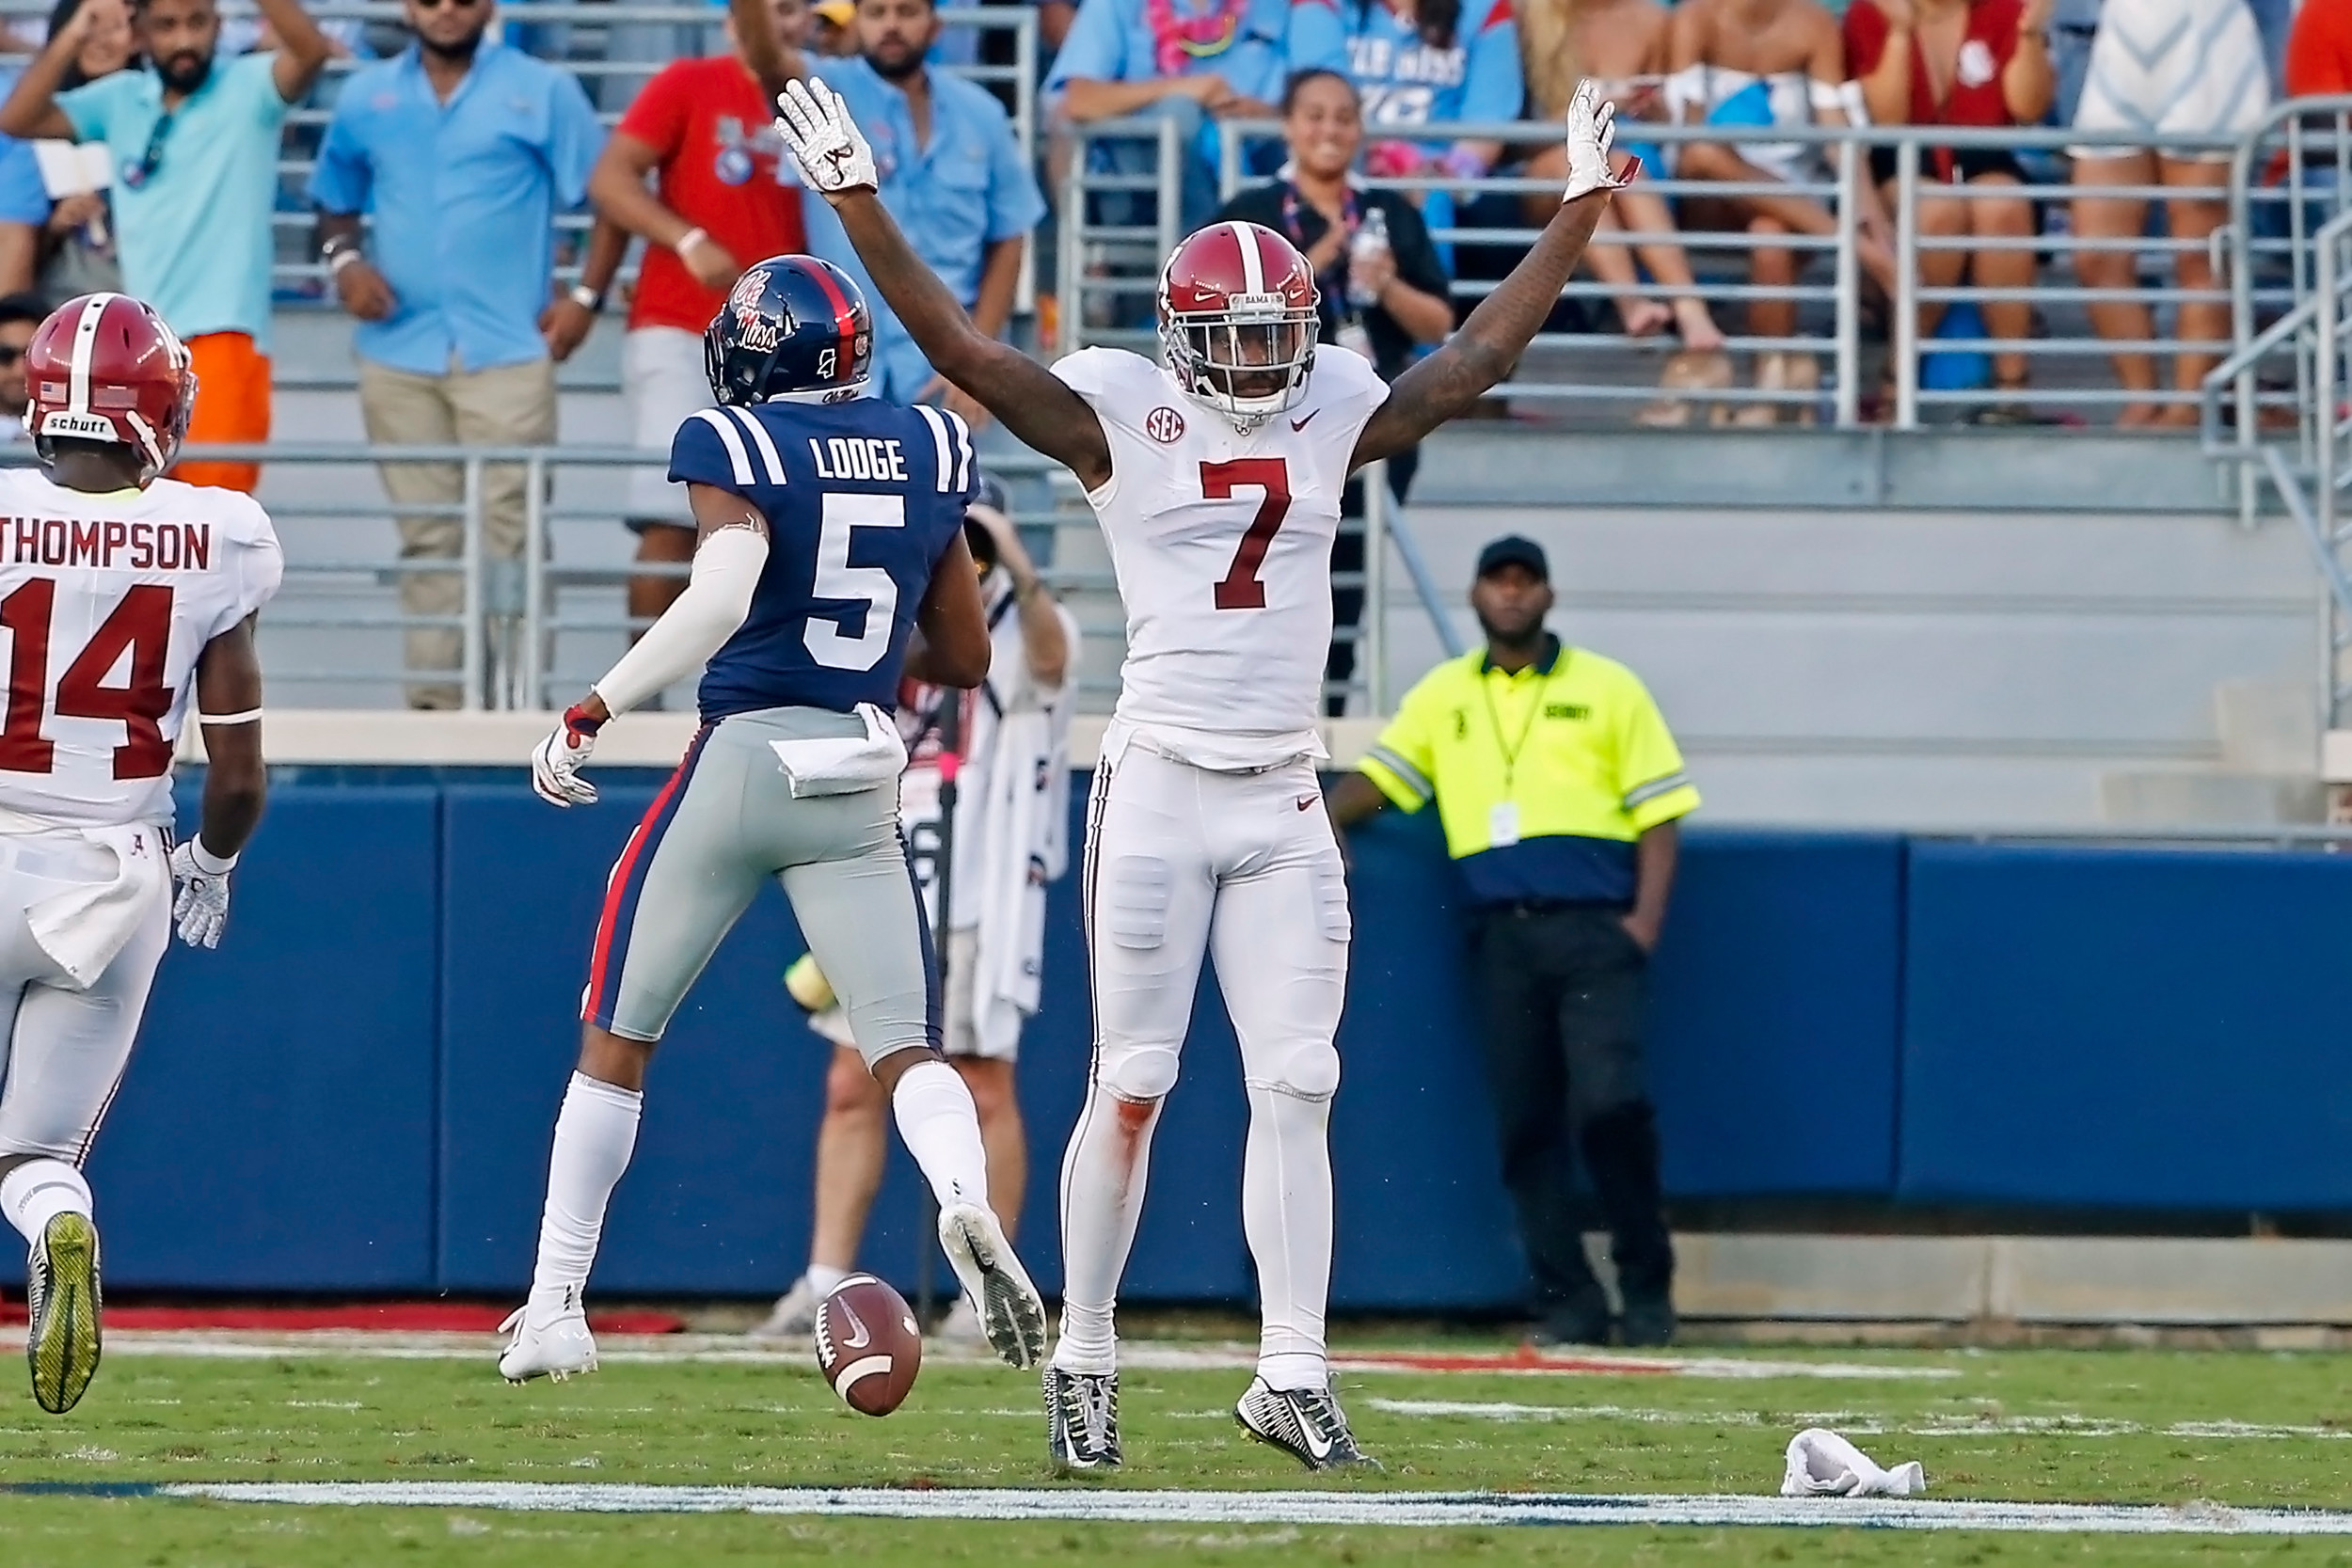 Alabama Crimson Tide defensive back Trevon Diggs (7) gestures after knocking away a pass during the game between the University of Alabama and Ole Miss at Vaught-Hemingway Stadium. Jason Clark / Daily Mountain Eagle